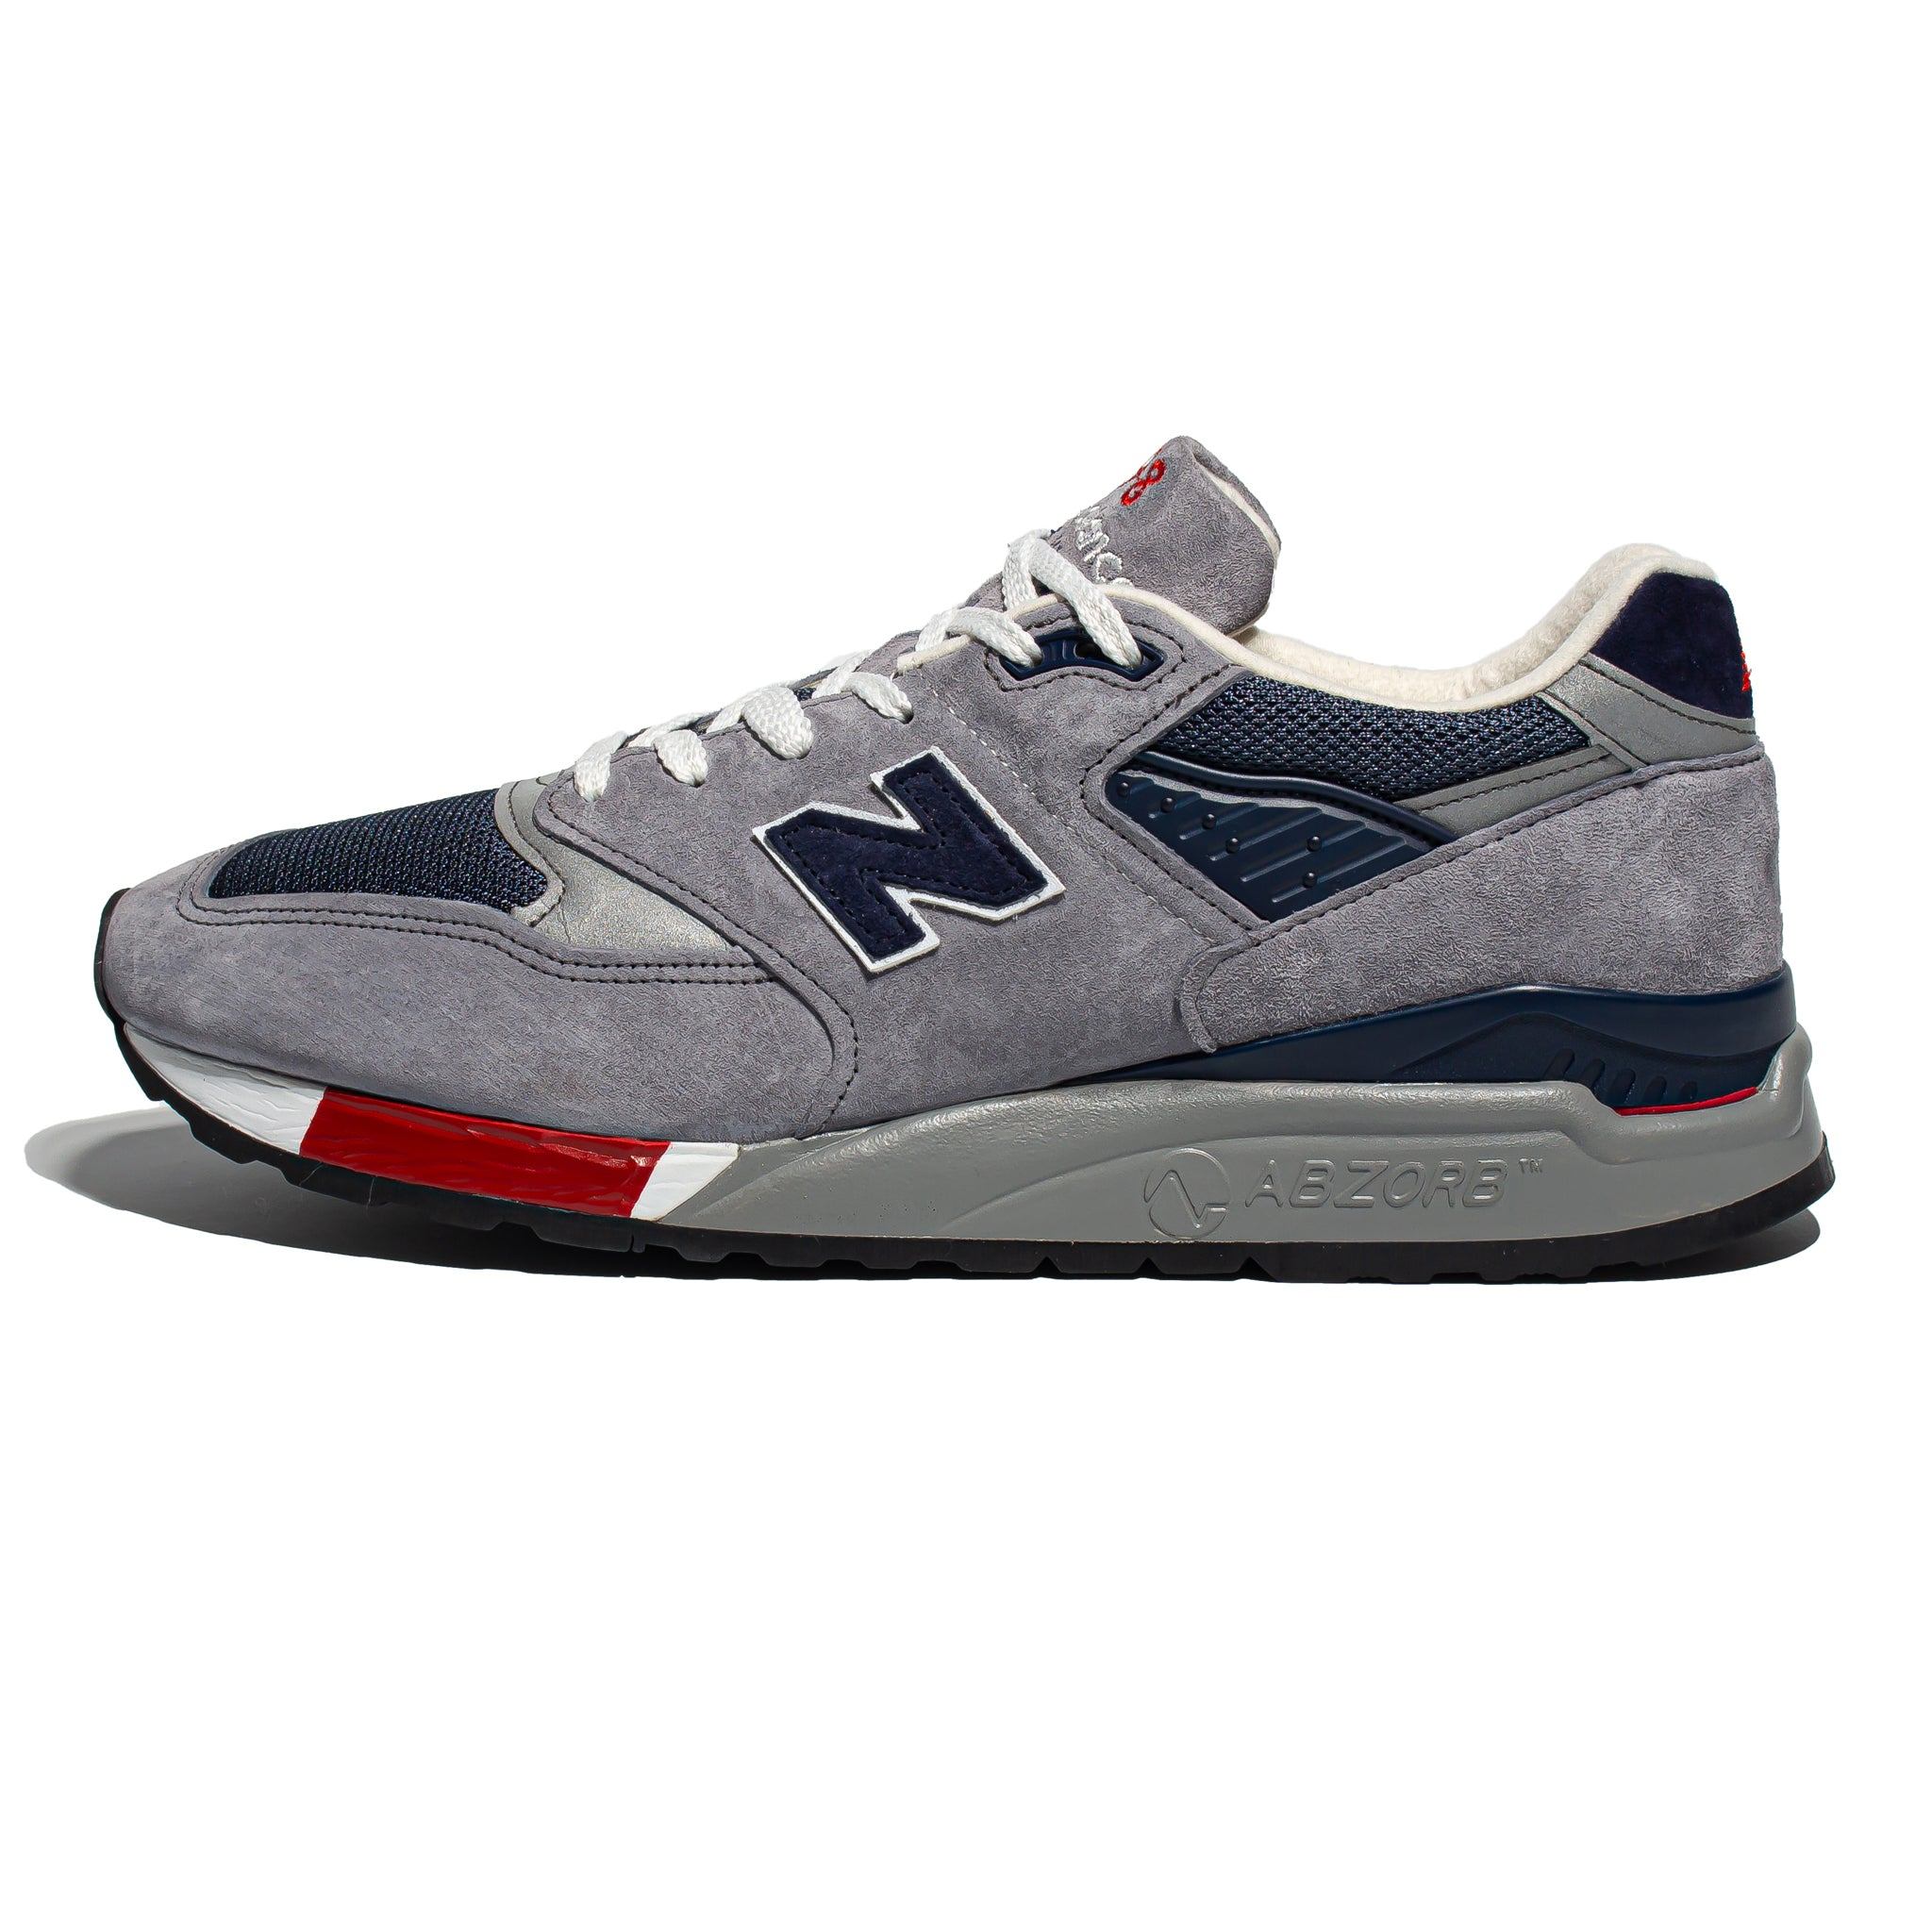 New Balance 'Made in USA' M998GNR